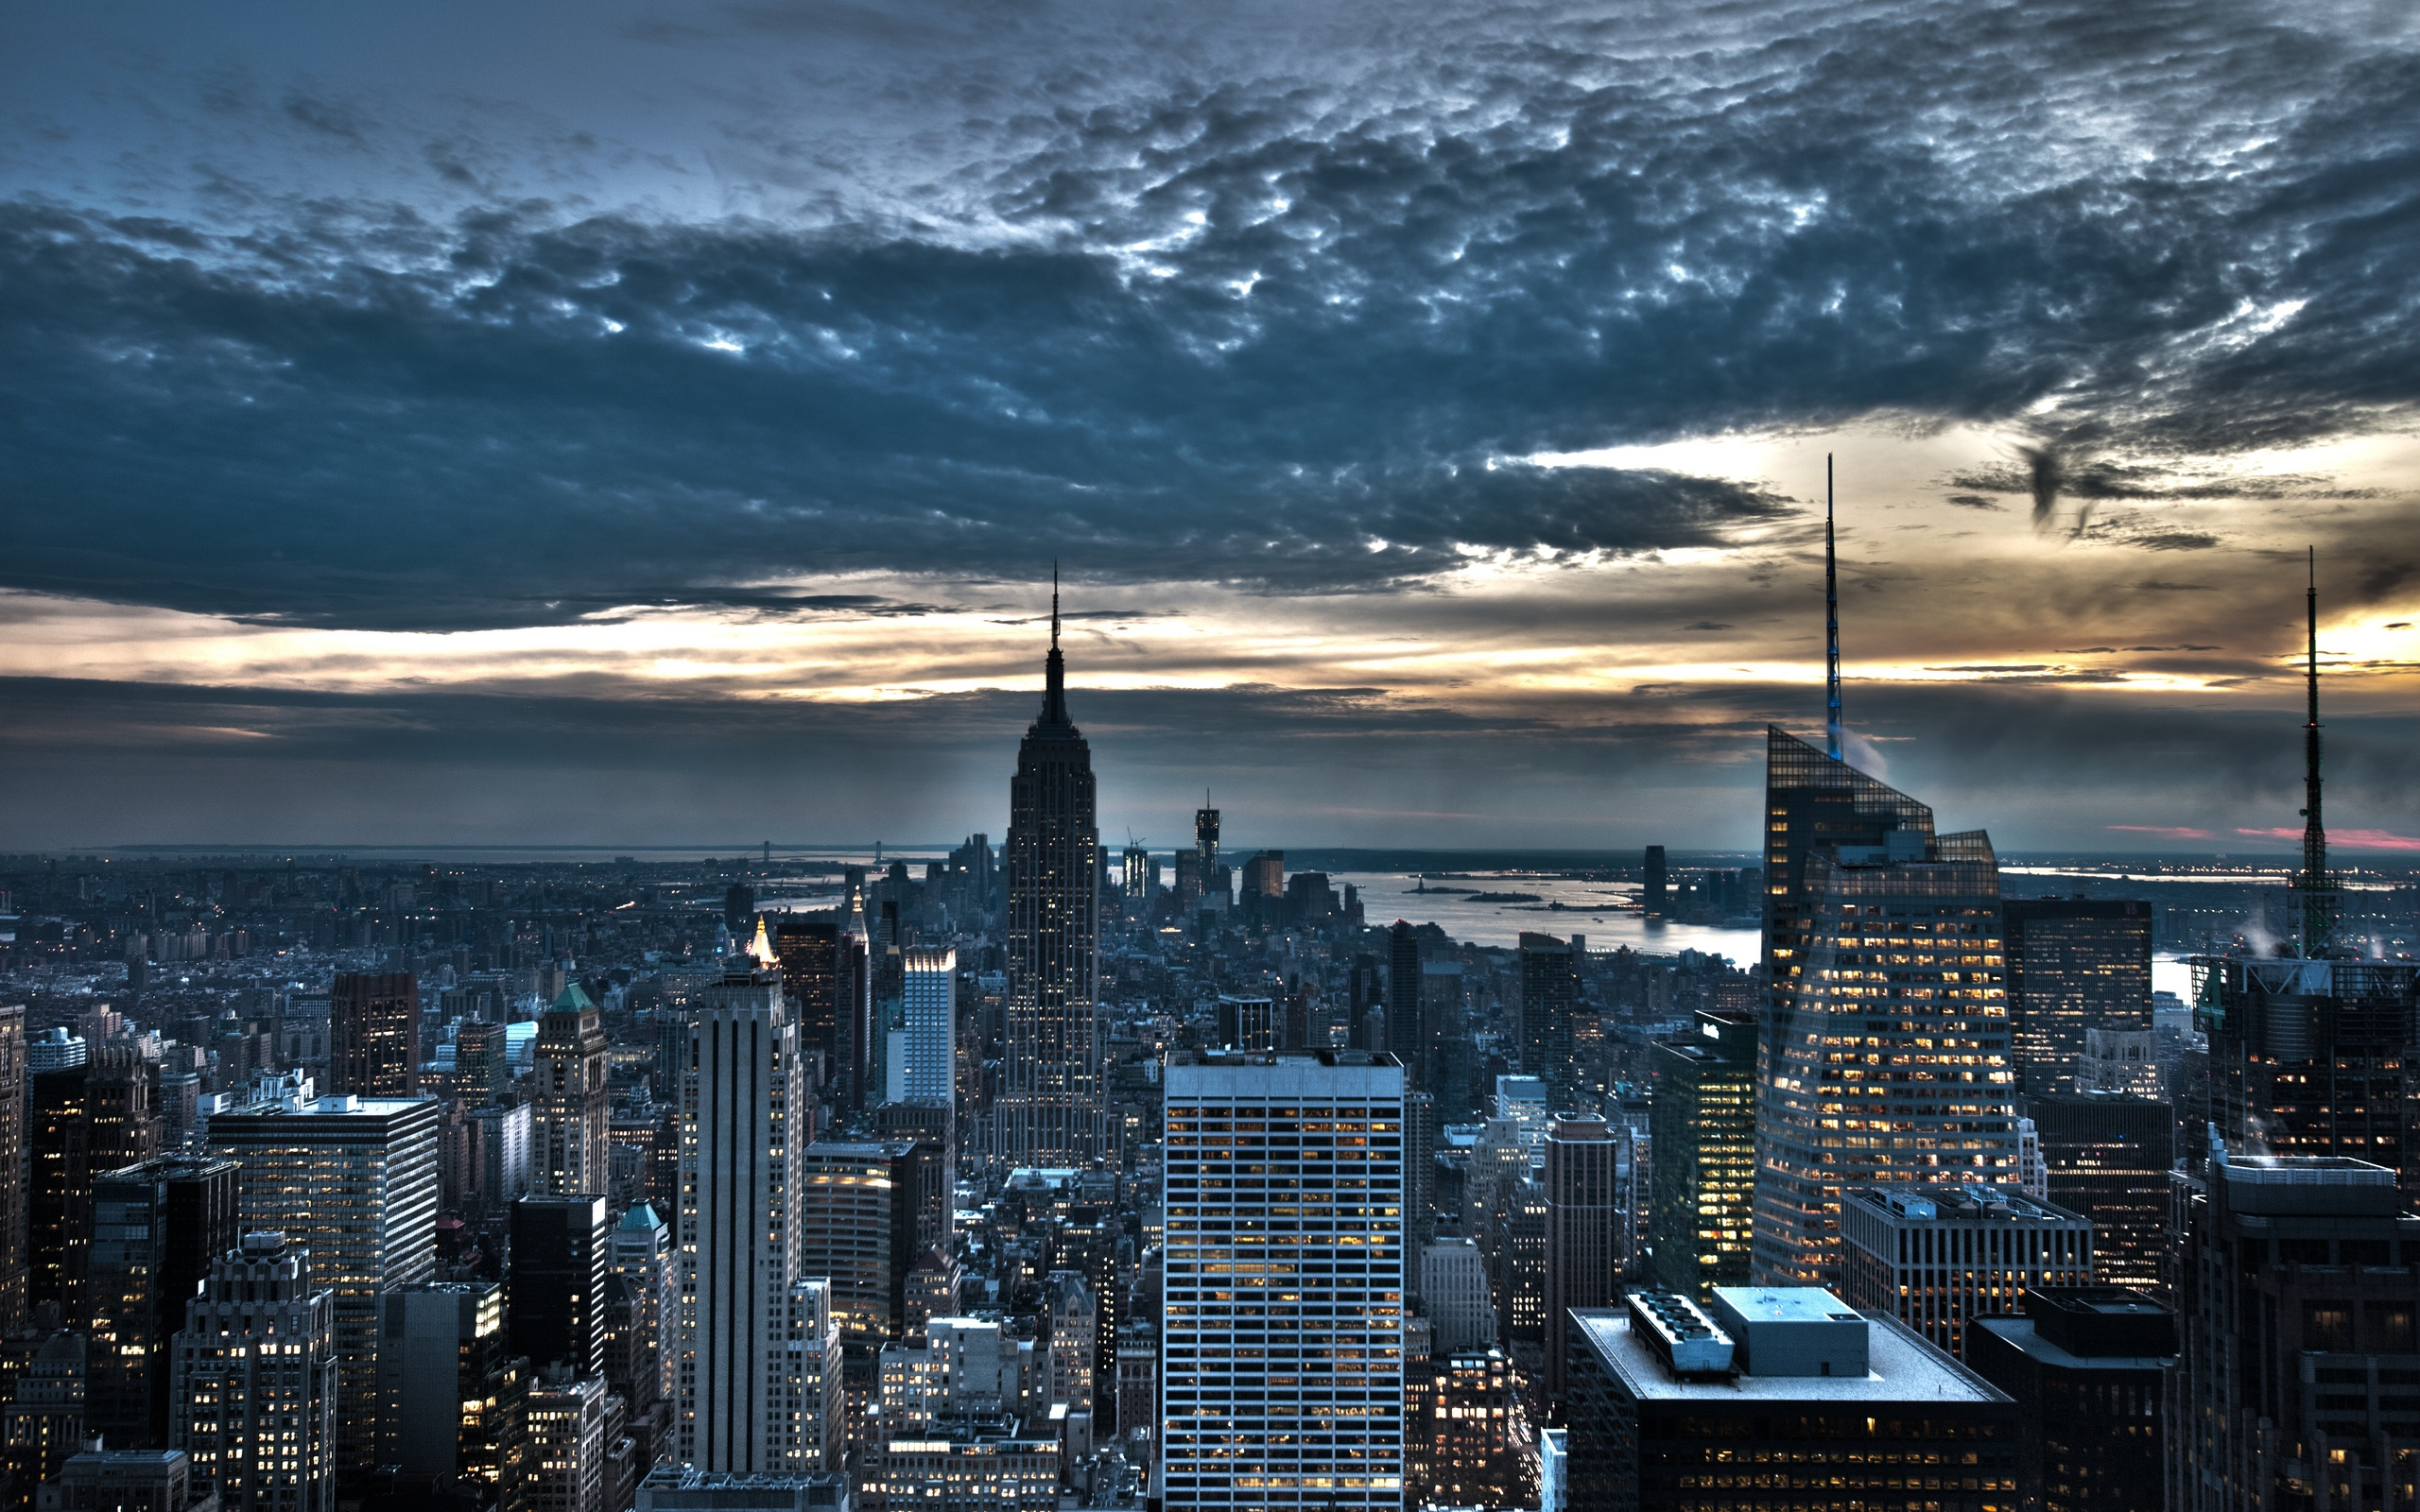 Empire State Building New York City Wallpapers   2560x1600   1542798 2560x1600